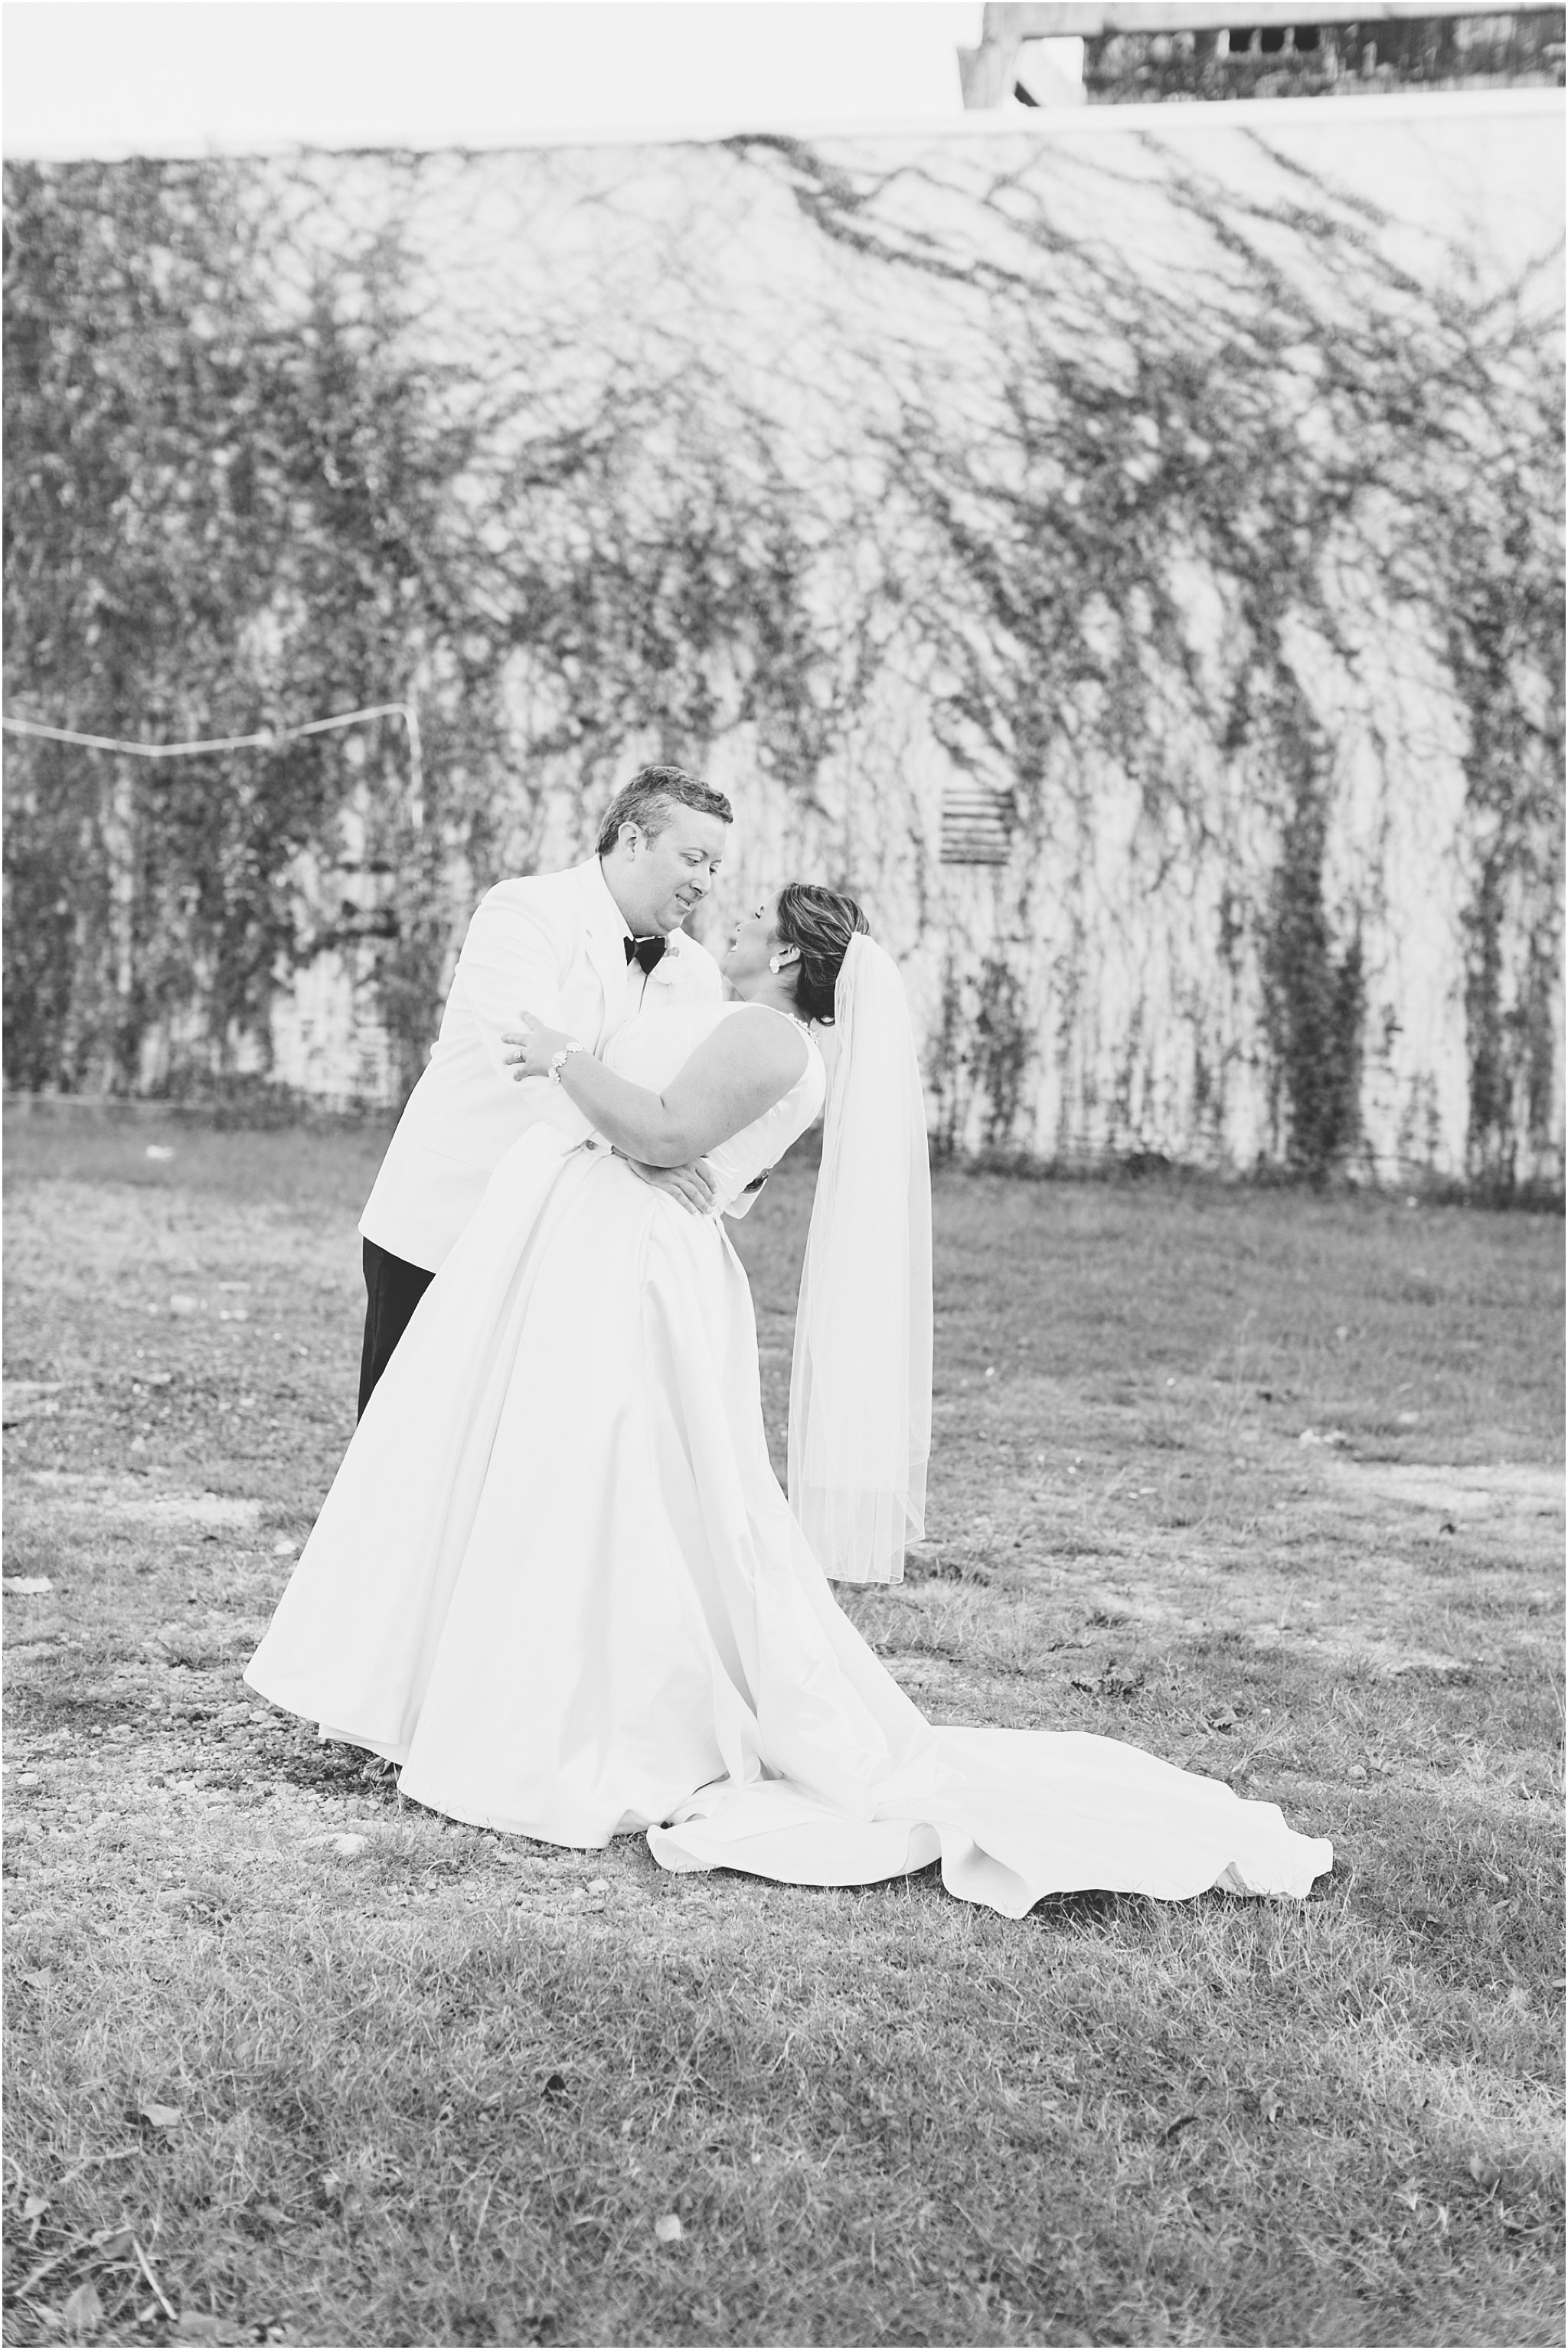 va_jessica_ryan_photography_virginia_wedding_norfolk_harrison_opera_house_norfolk_arts_district_portraits_3820